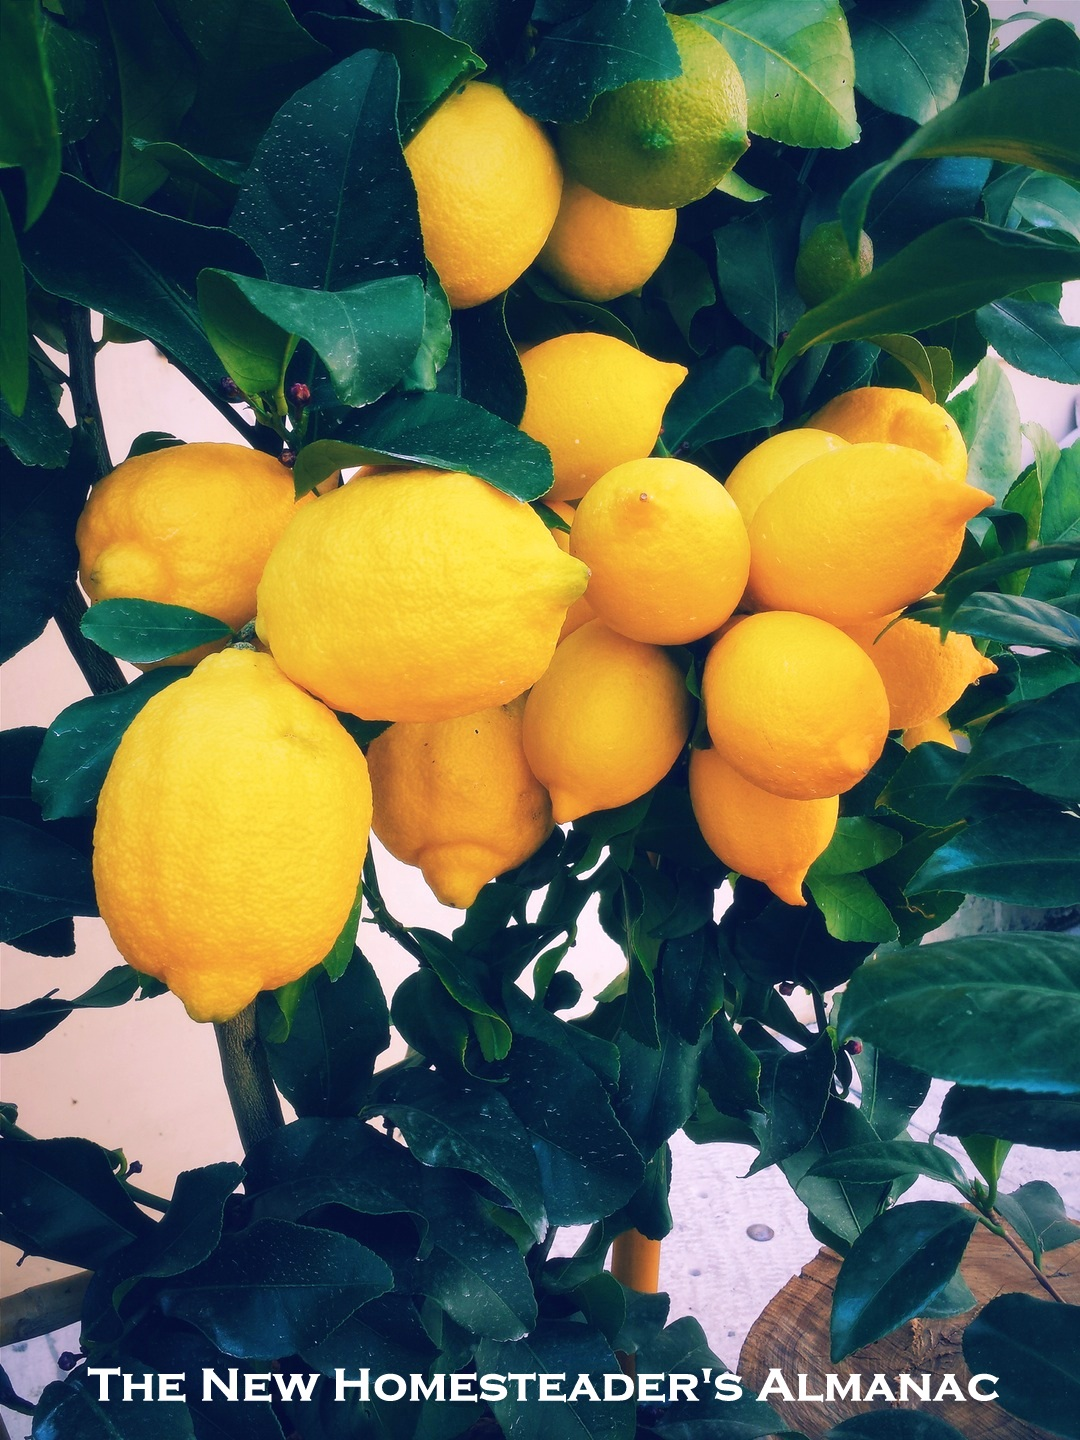 Lemons - The New Homesteader's Almanac